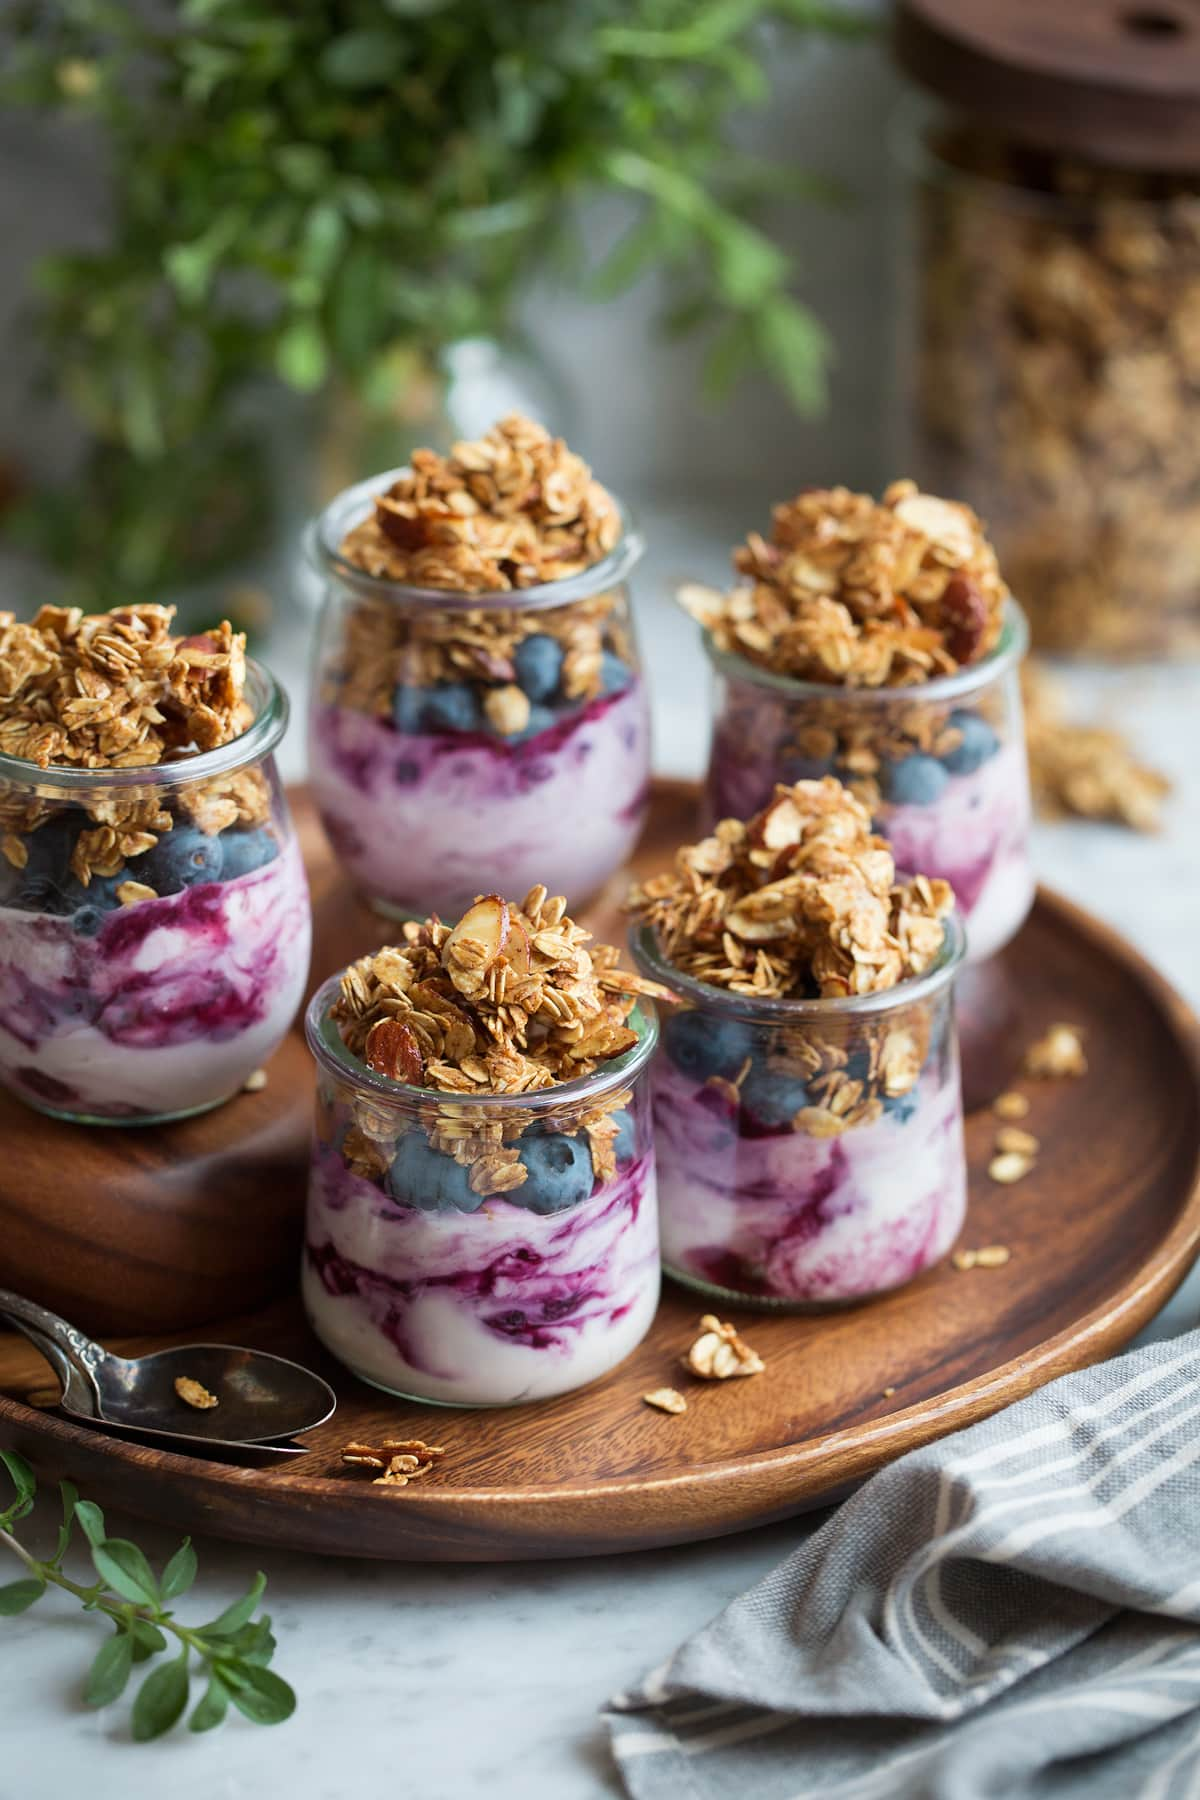 Five servings of granola, yogurt and berries in glass jars.